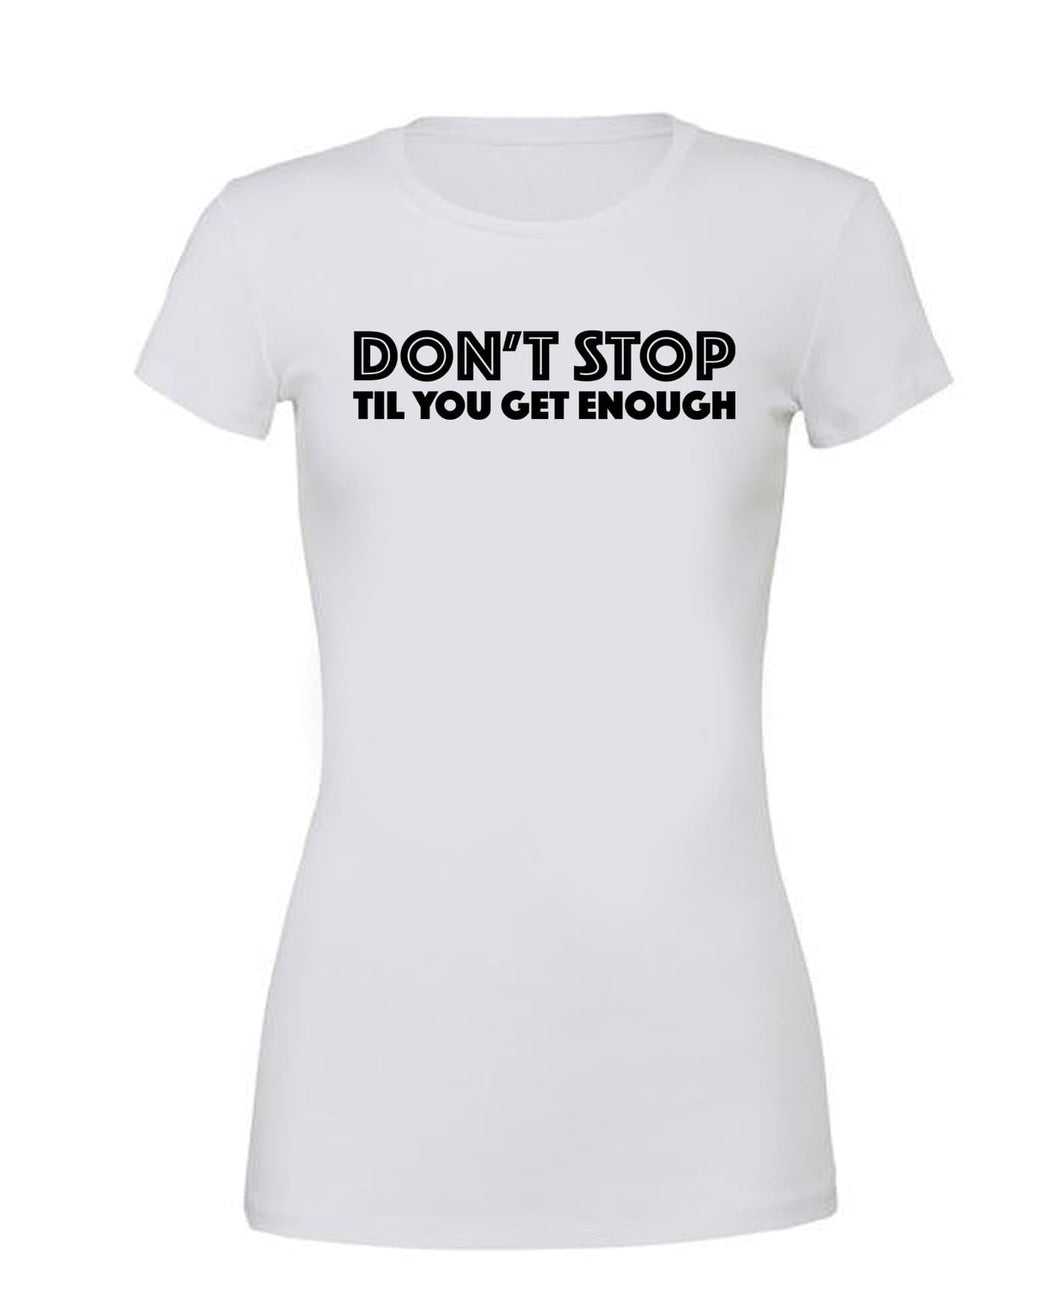 DON'T STOP TIL YOU GET ENOUGH - T Shirt White - SoreTodayStrongTomorrow